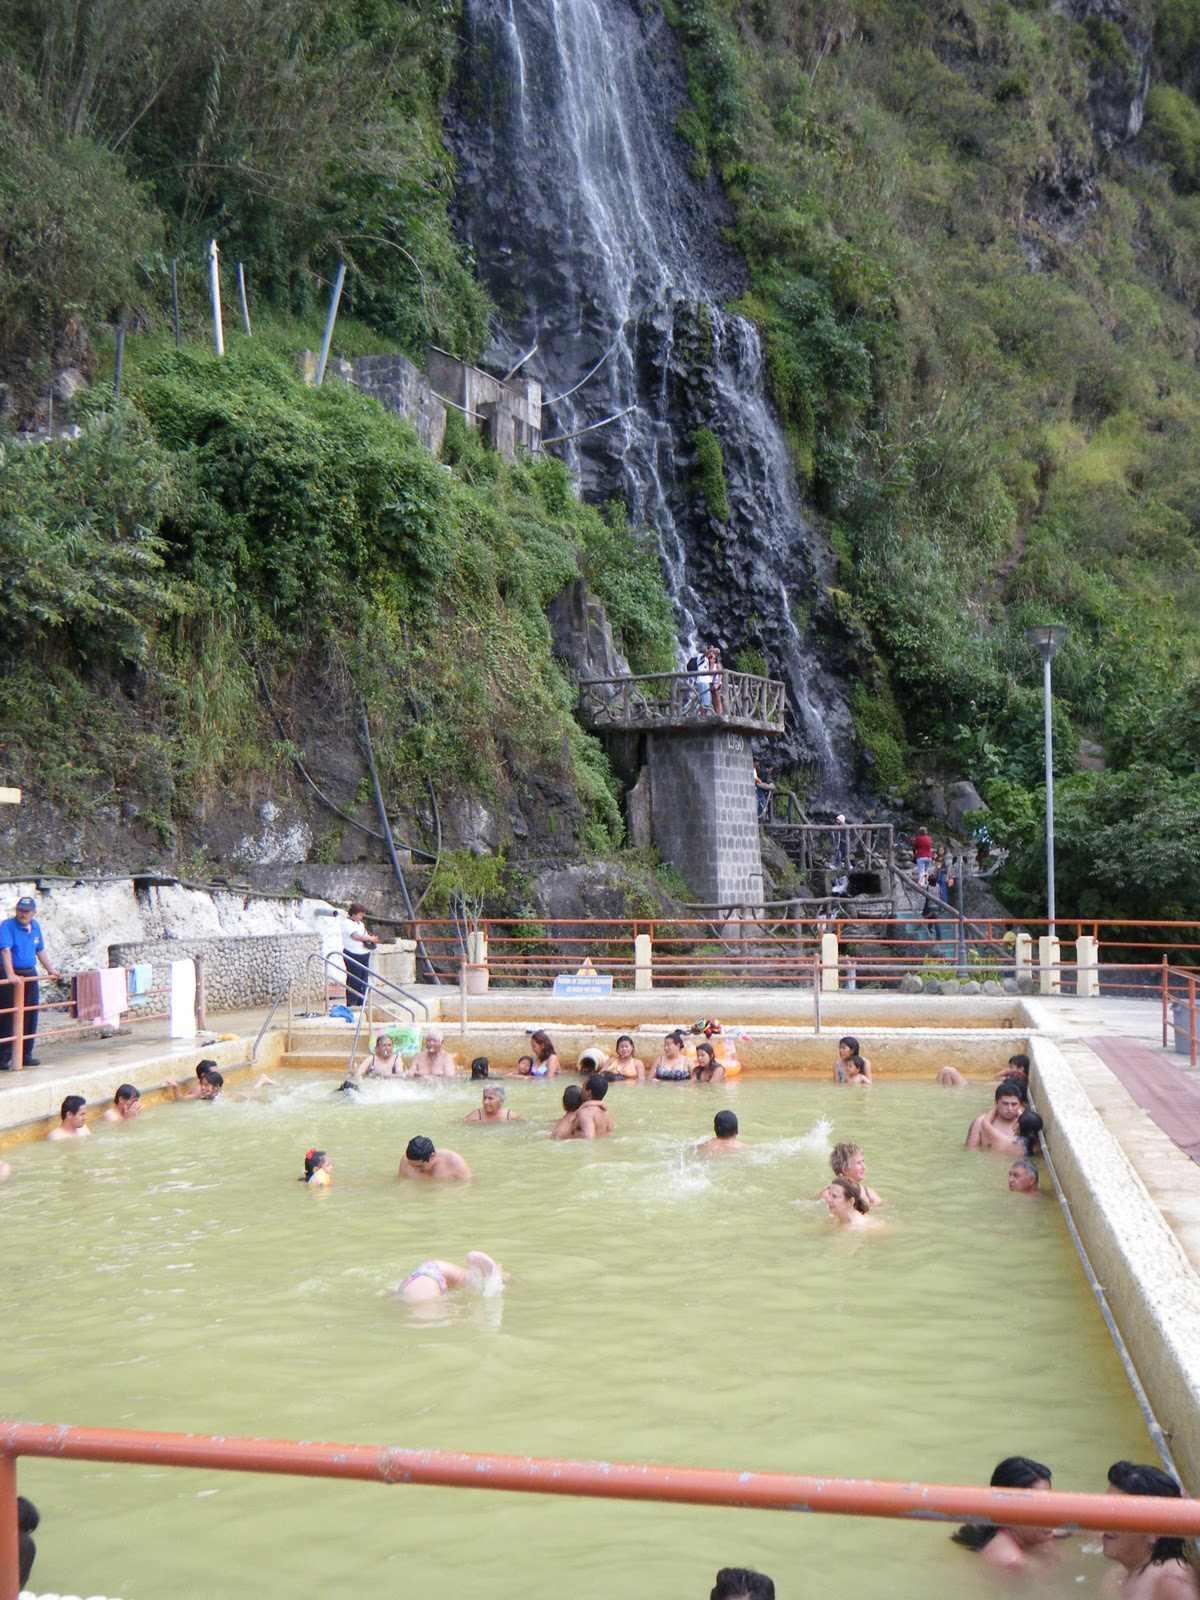 The international rambler ba os not just hot springs - How long after shocking pool can i swim ...